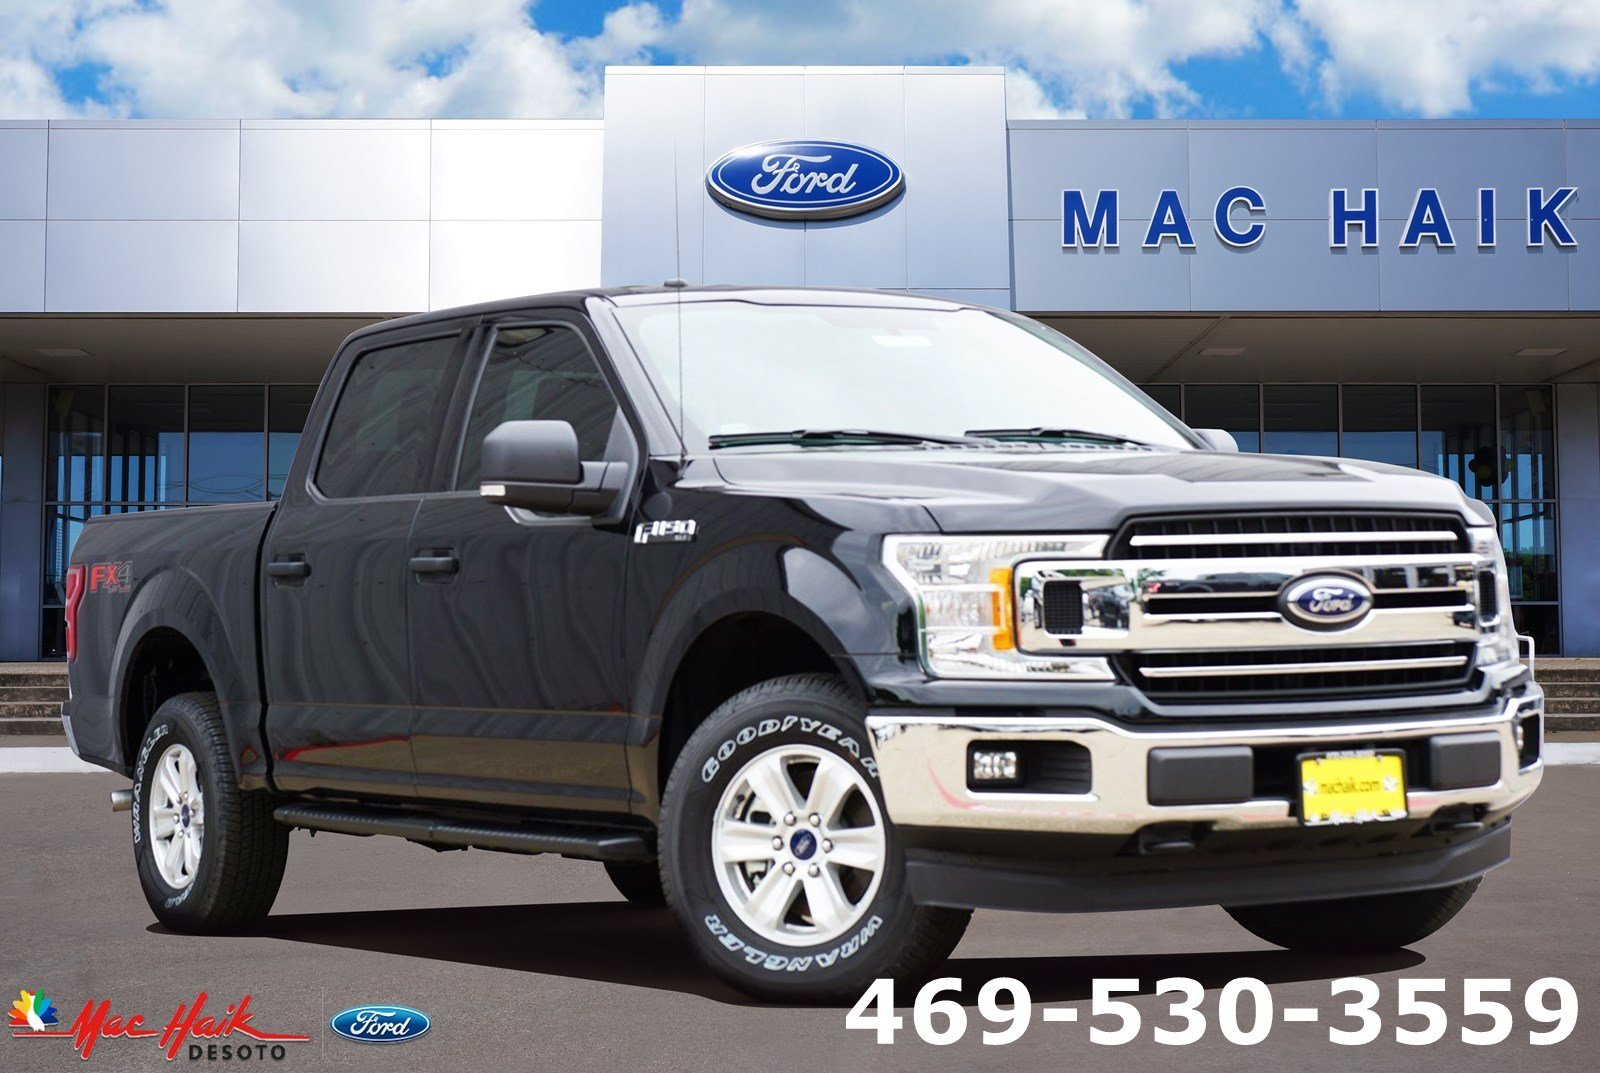 New 2018 Ford F-150 XLT Truck SuperCrew Cab in Desoto, TX